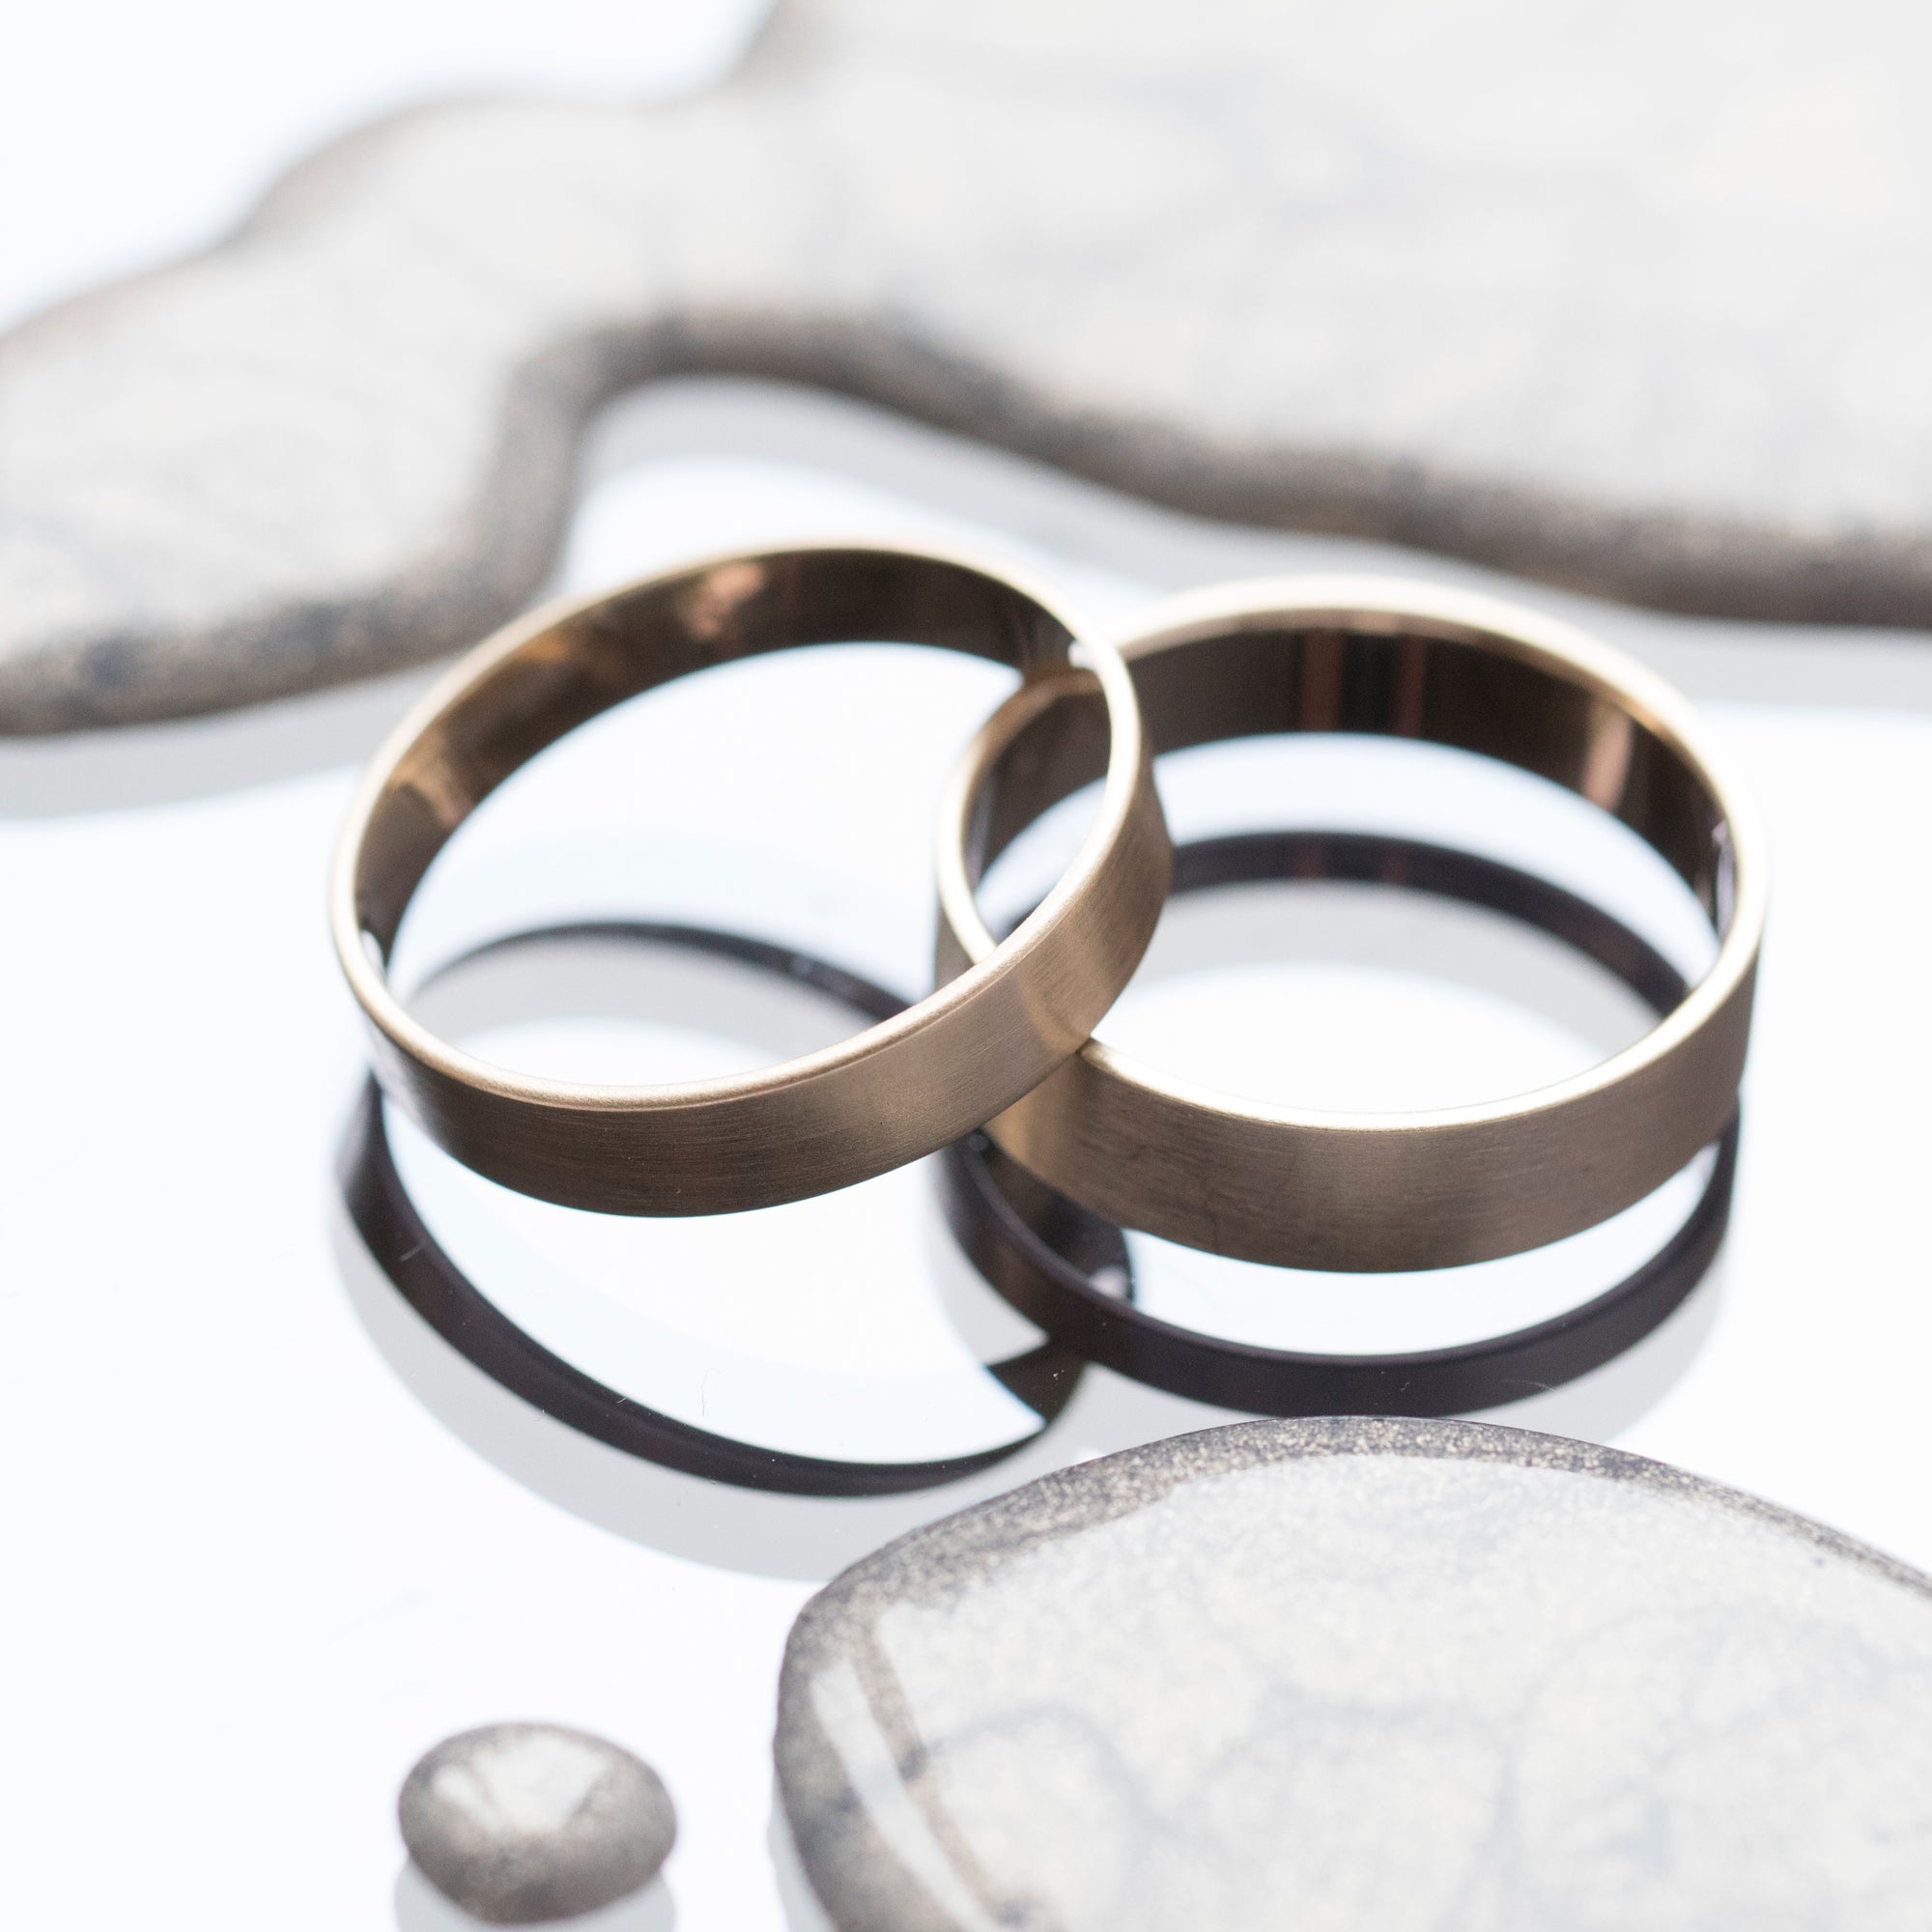 Trusted Ring Set